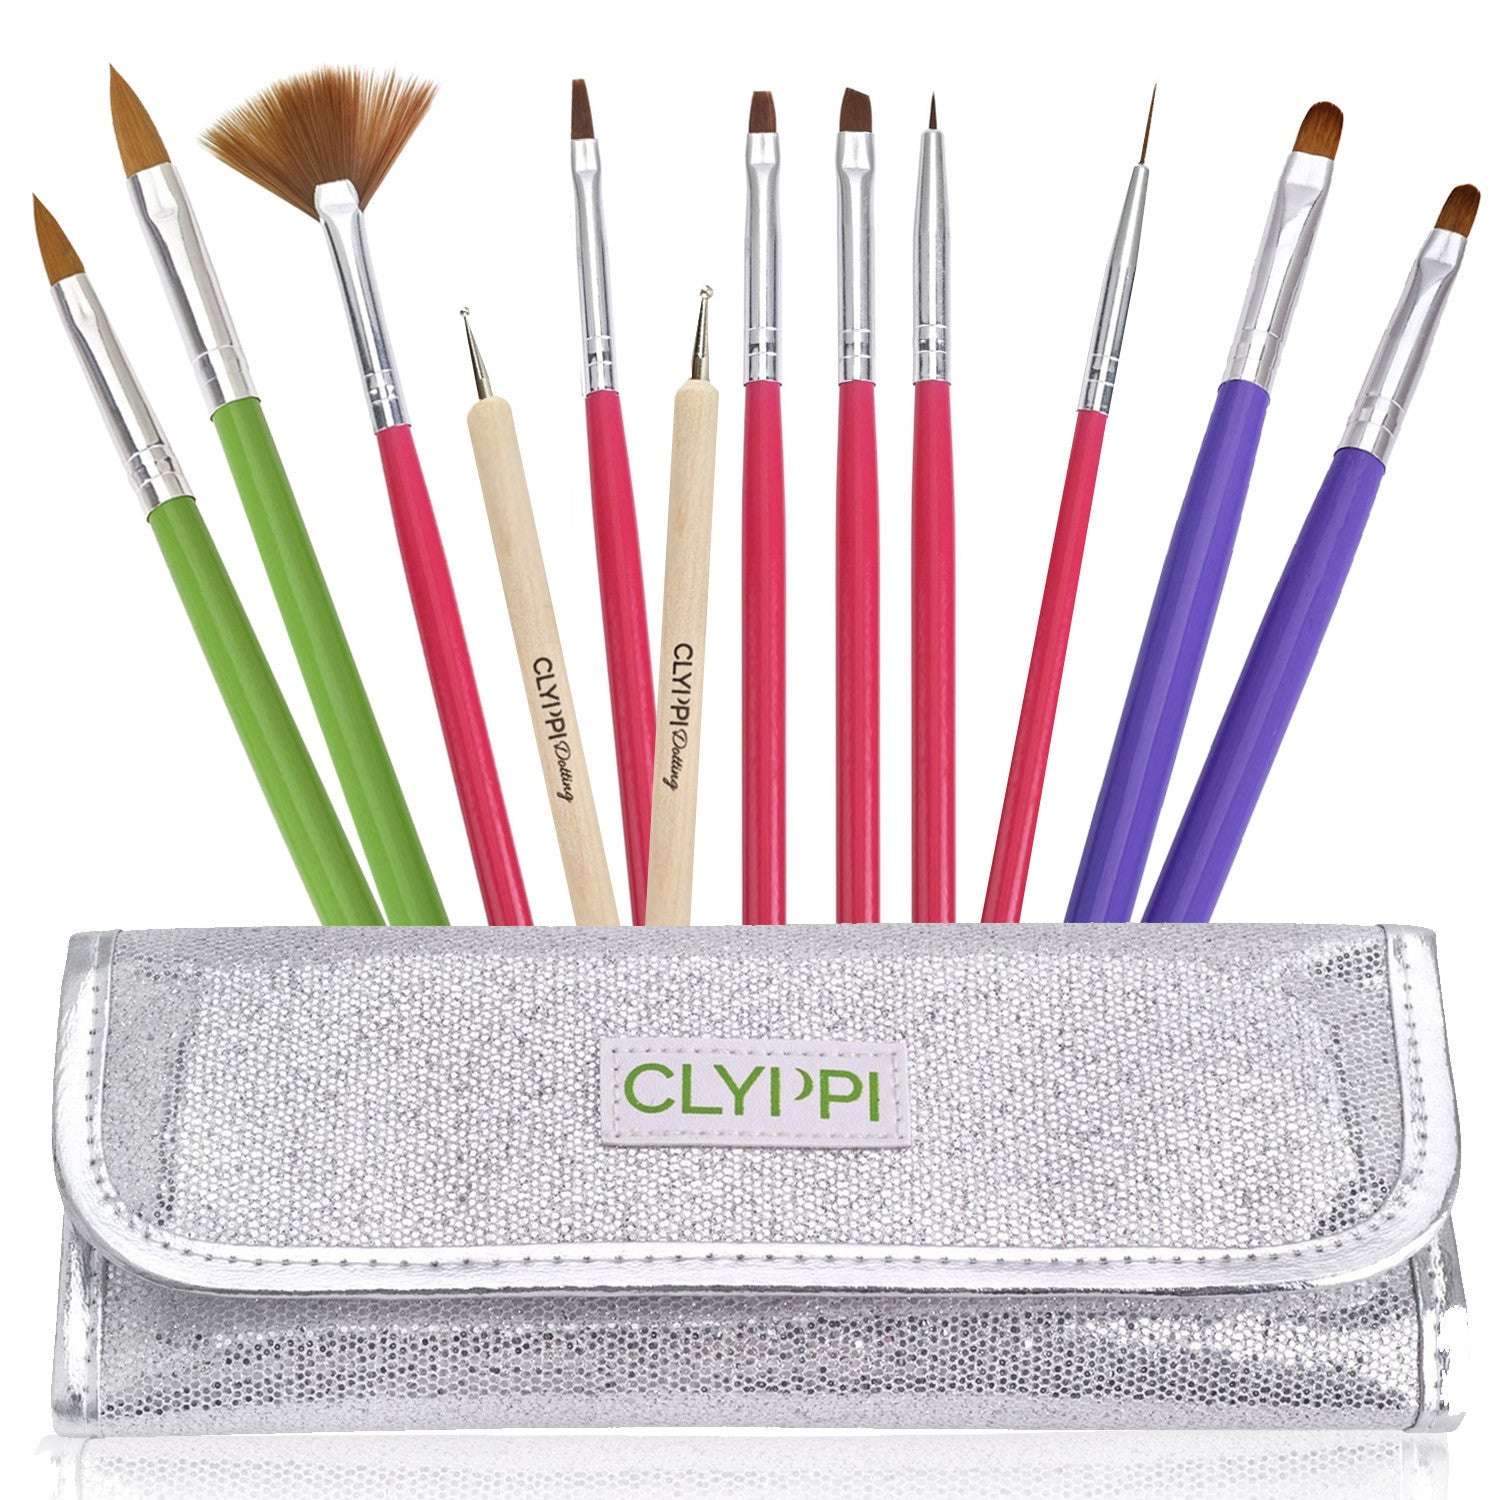 Clyppi nail art brushes set rippling kindness clyppi nail art brushes set prinsesfo Gallery